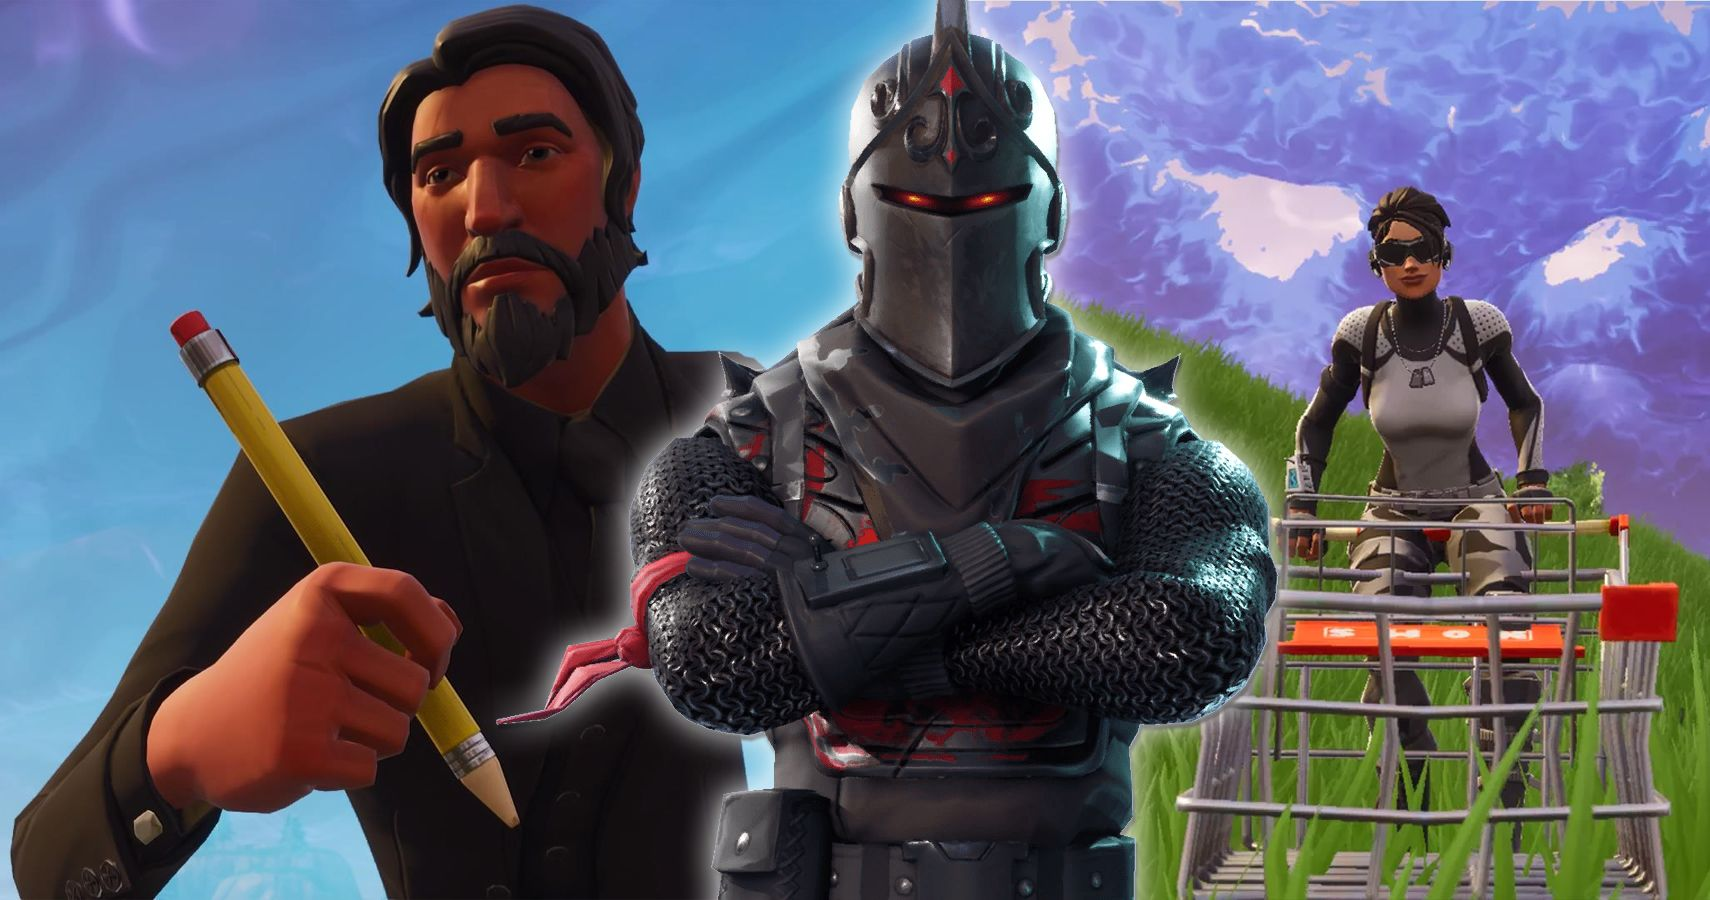 Fortnite 10 Things Pros Do To Win Victory Royale And 10 That Only